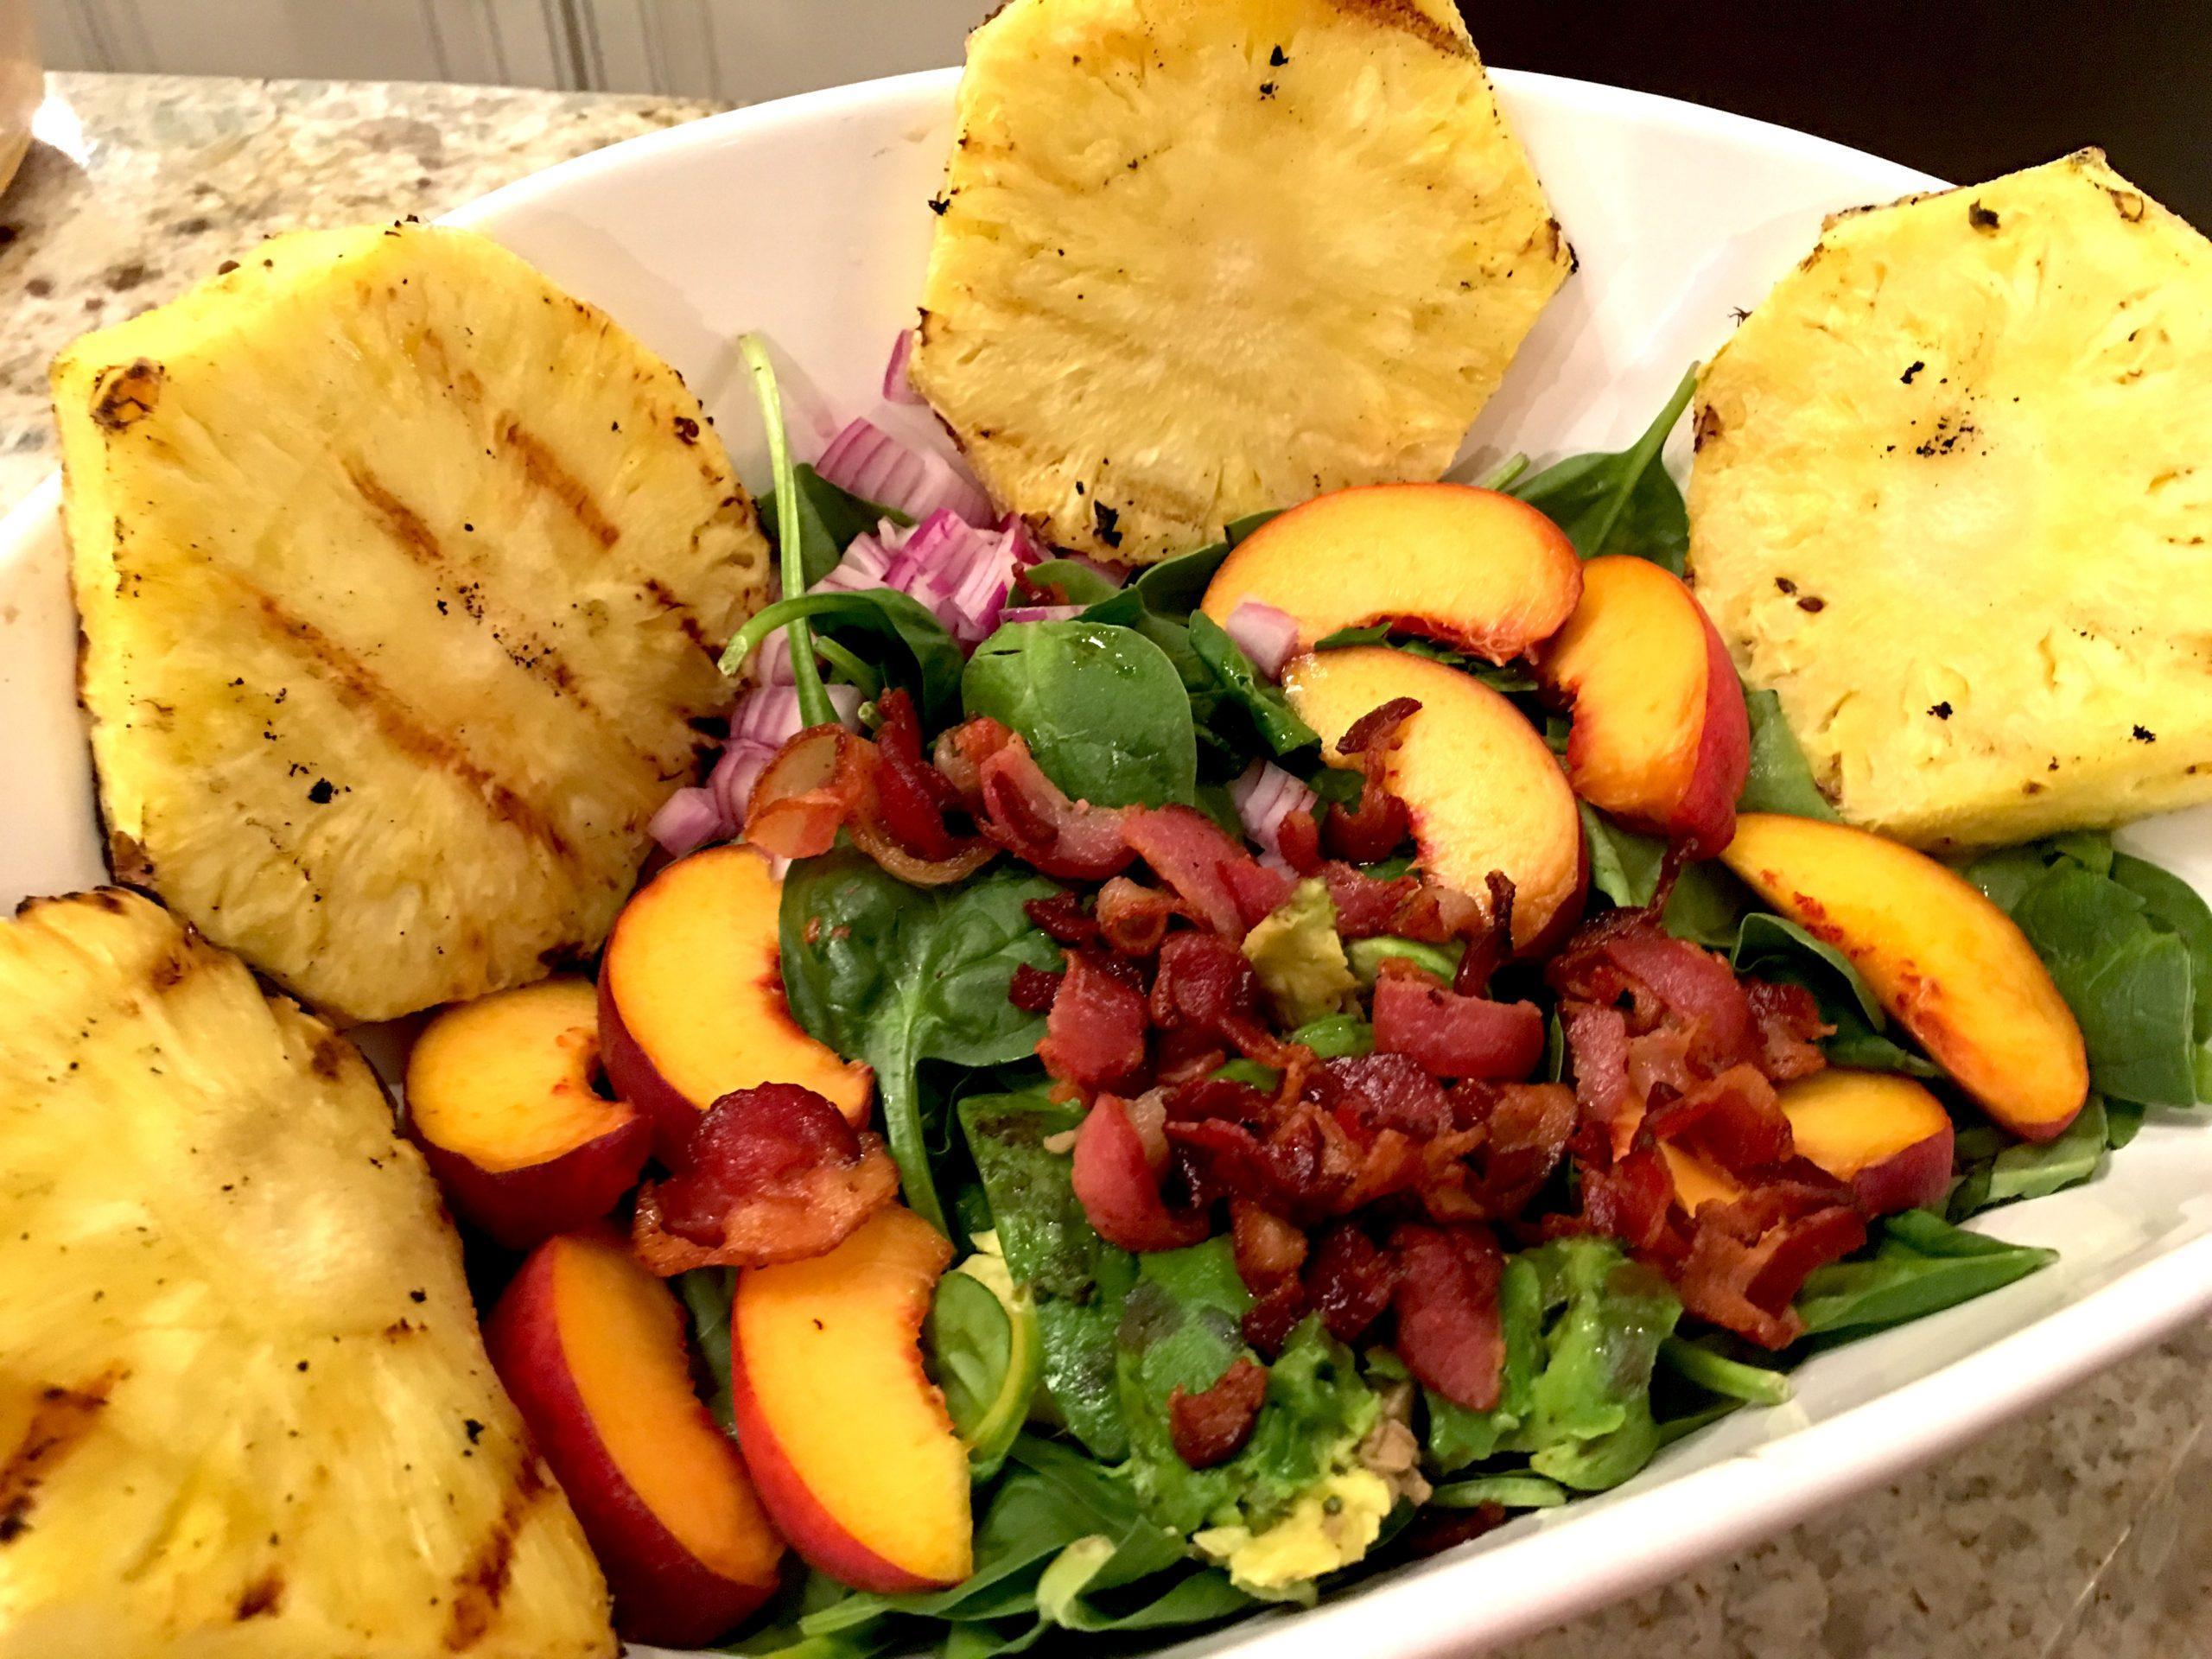 This peach salad is the perfect summertime meal! It's refreshing and filled with the great combo of avocado and bacon. Yum!